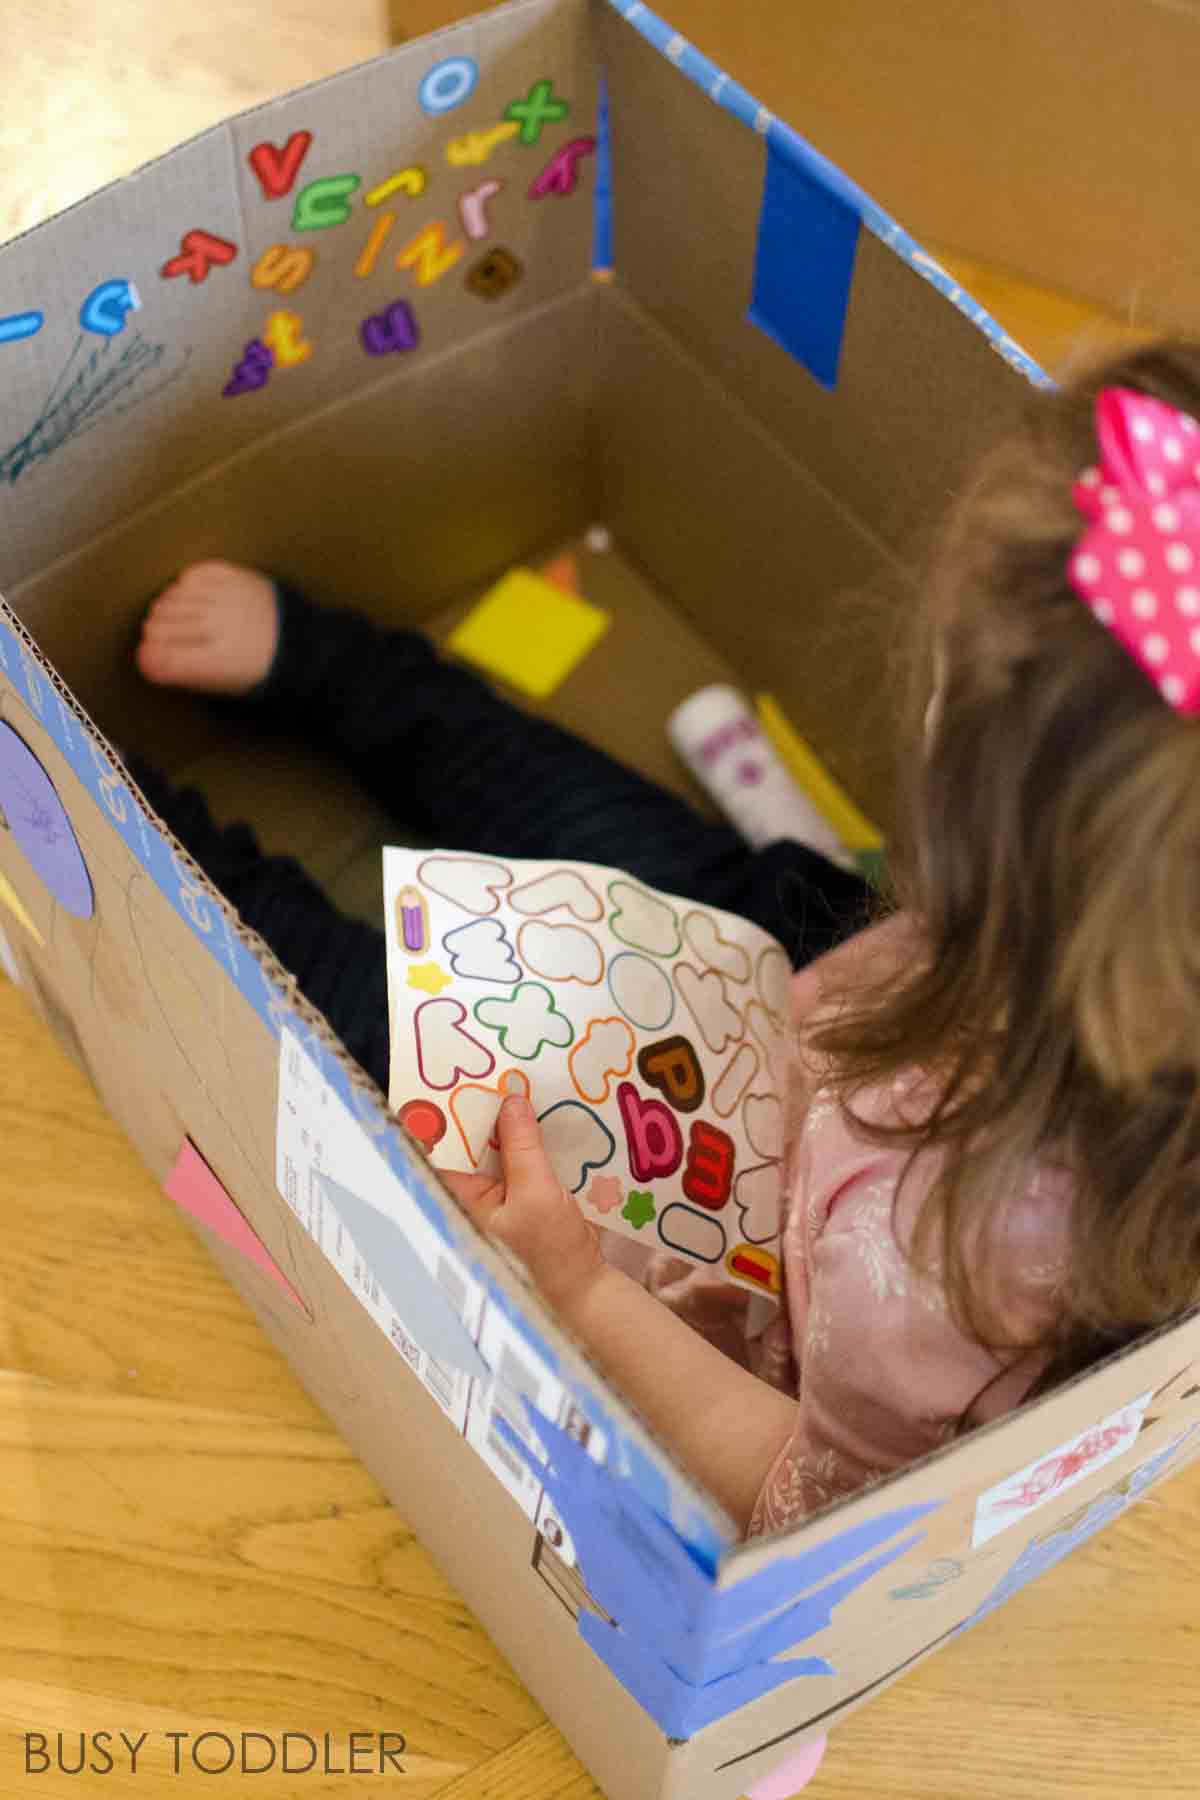 TIPS FOR MAKING EXTREME BOXES: This isn't normal box decorating - this is a legitimate toddler activity that kids love so much! A great indoor activity that you can save and play with for months. A quick and easy toddler activity that's perfect for rainy days.